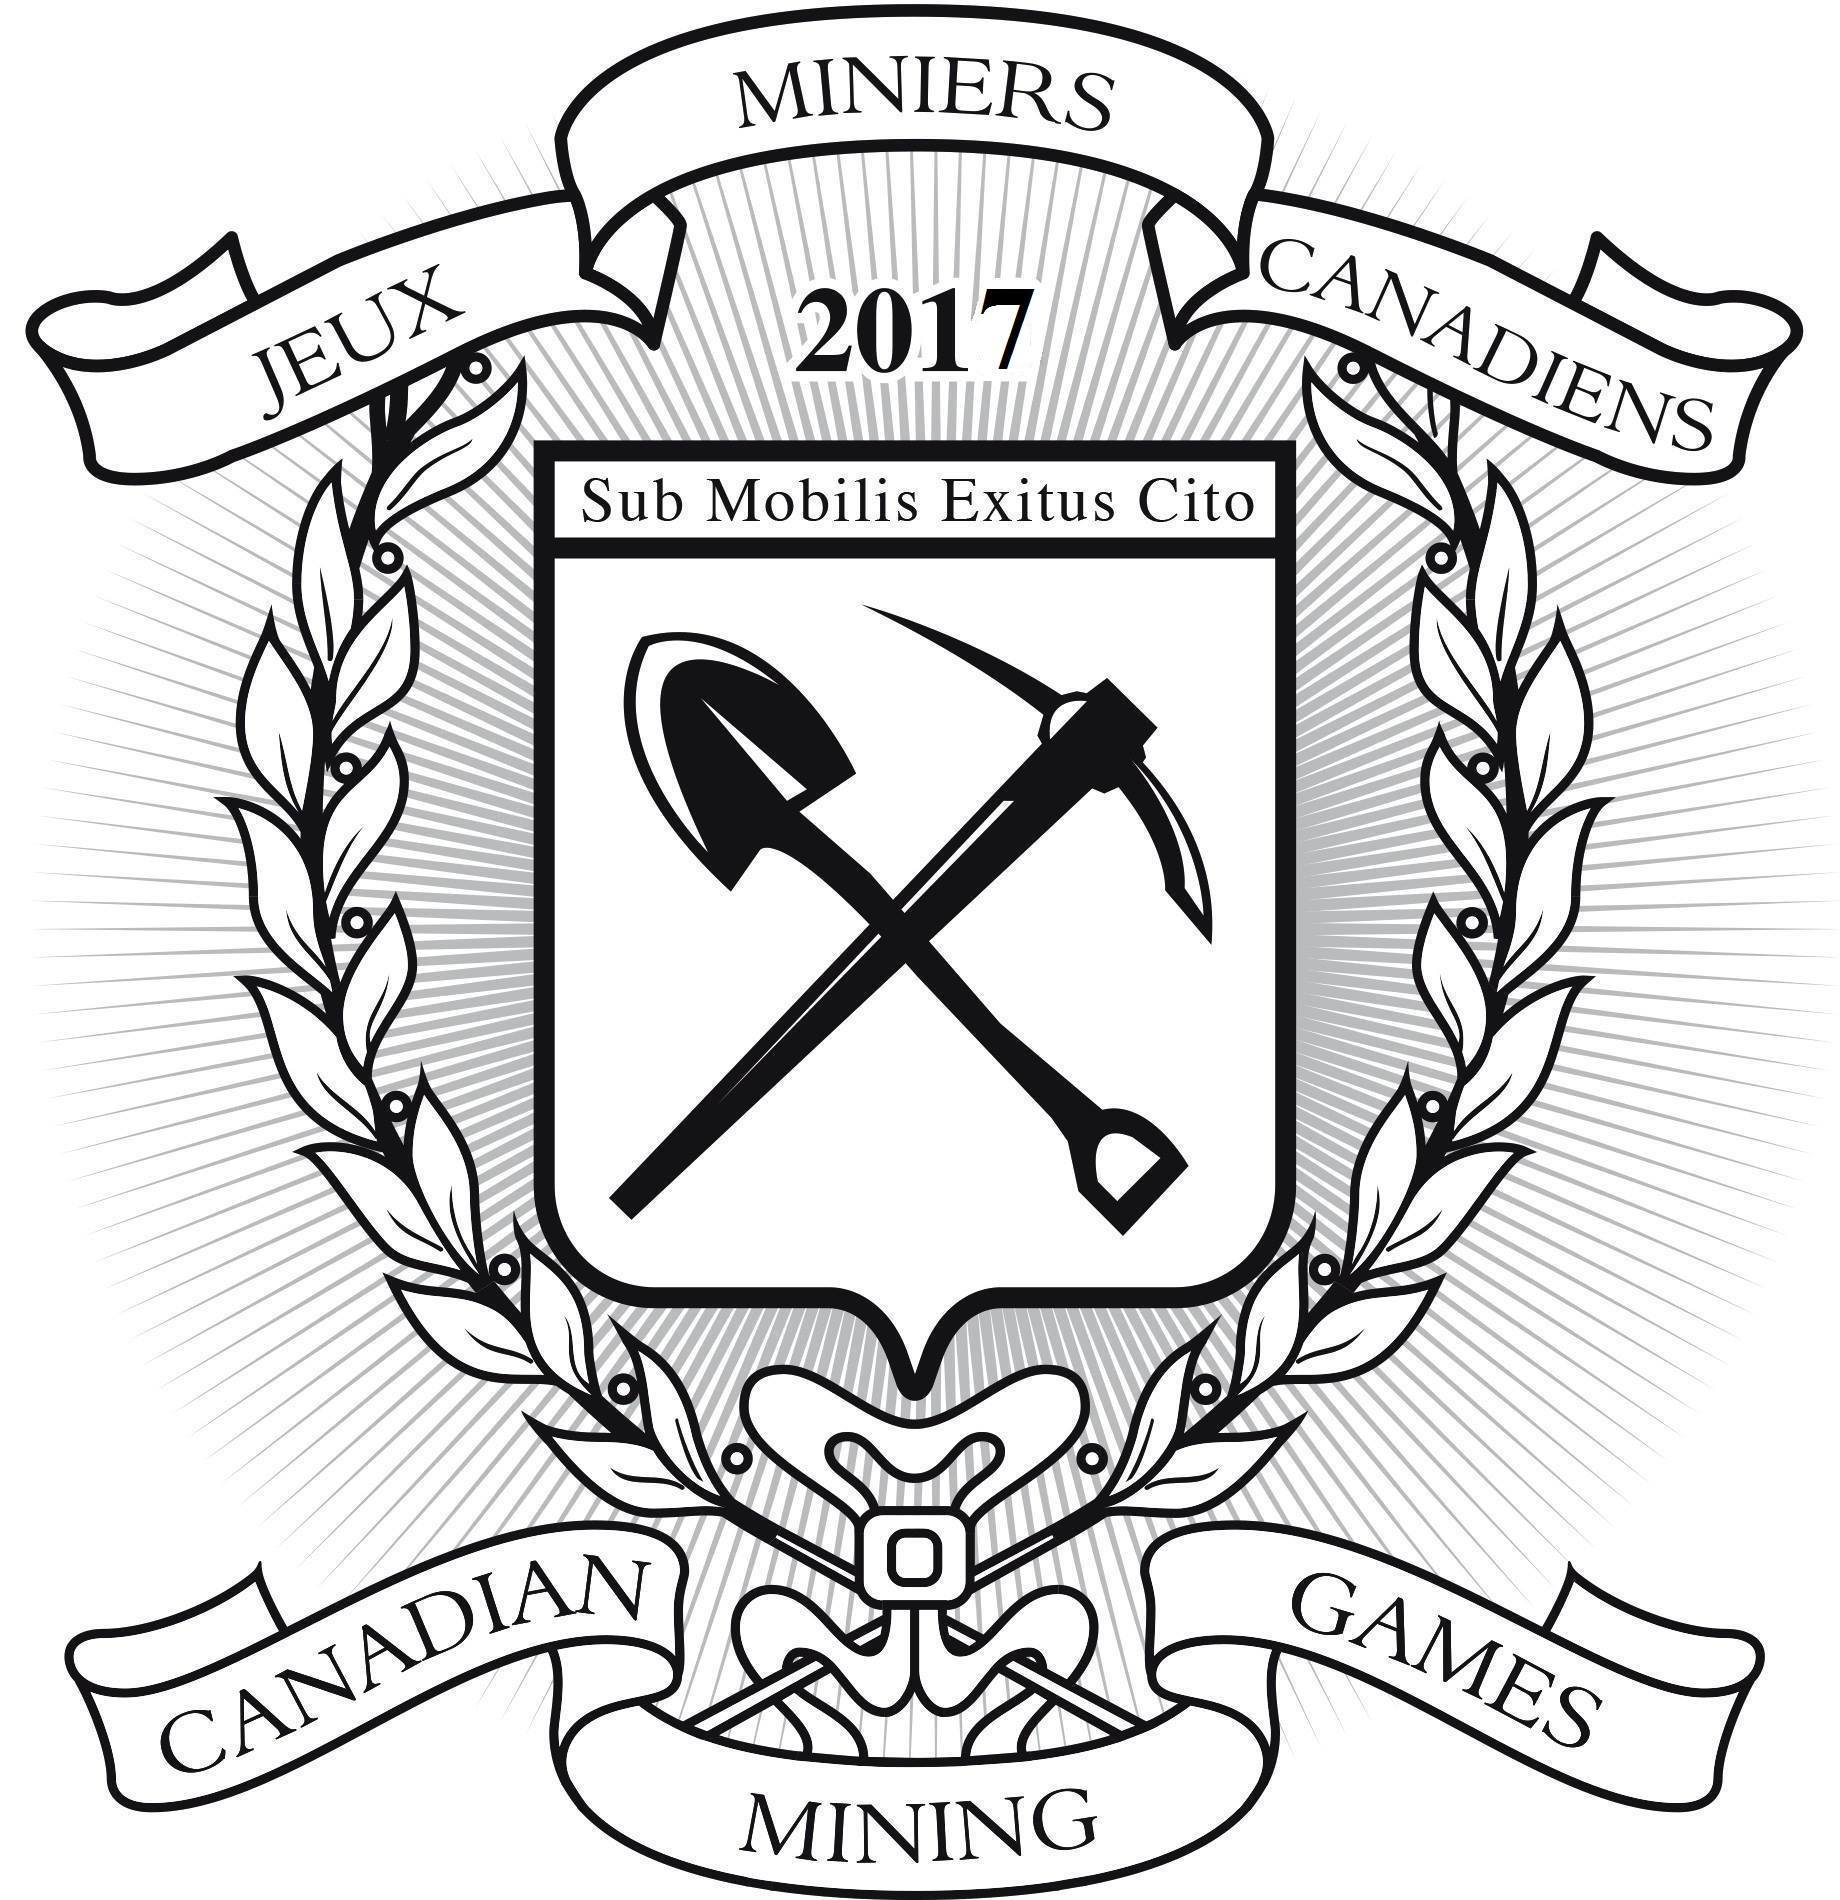 1840x1900 Canadian Mining Games 2017 Becker Mining Systems South Africa